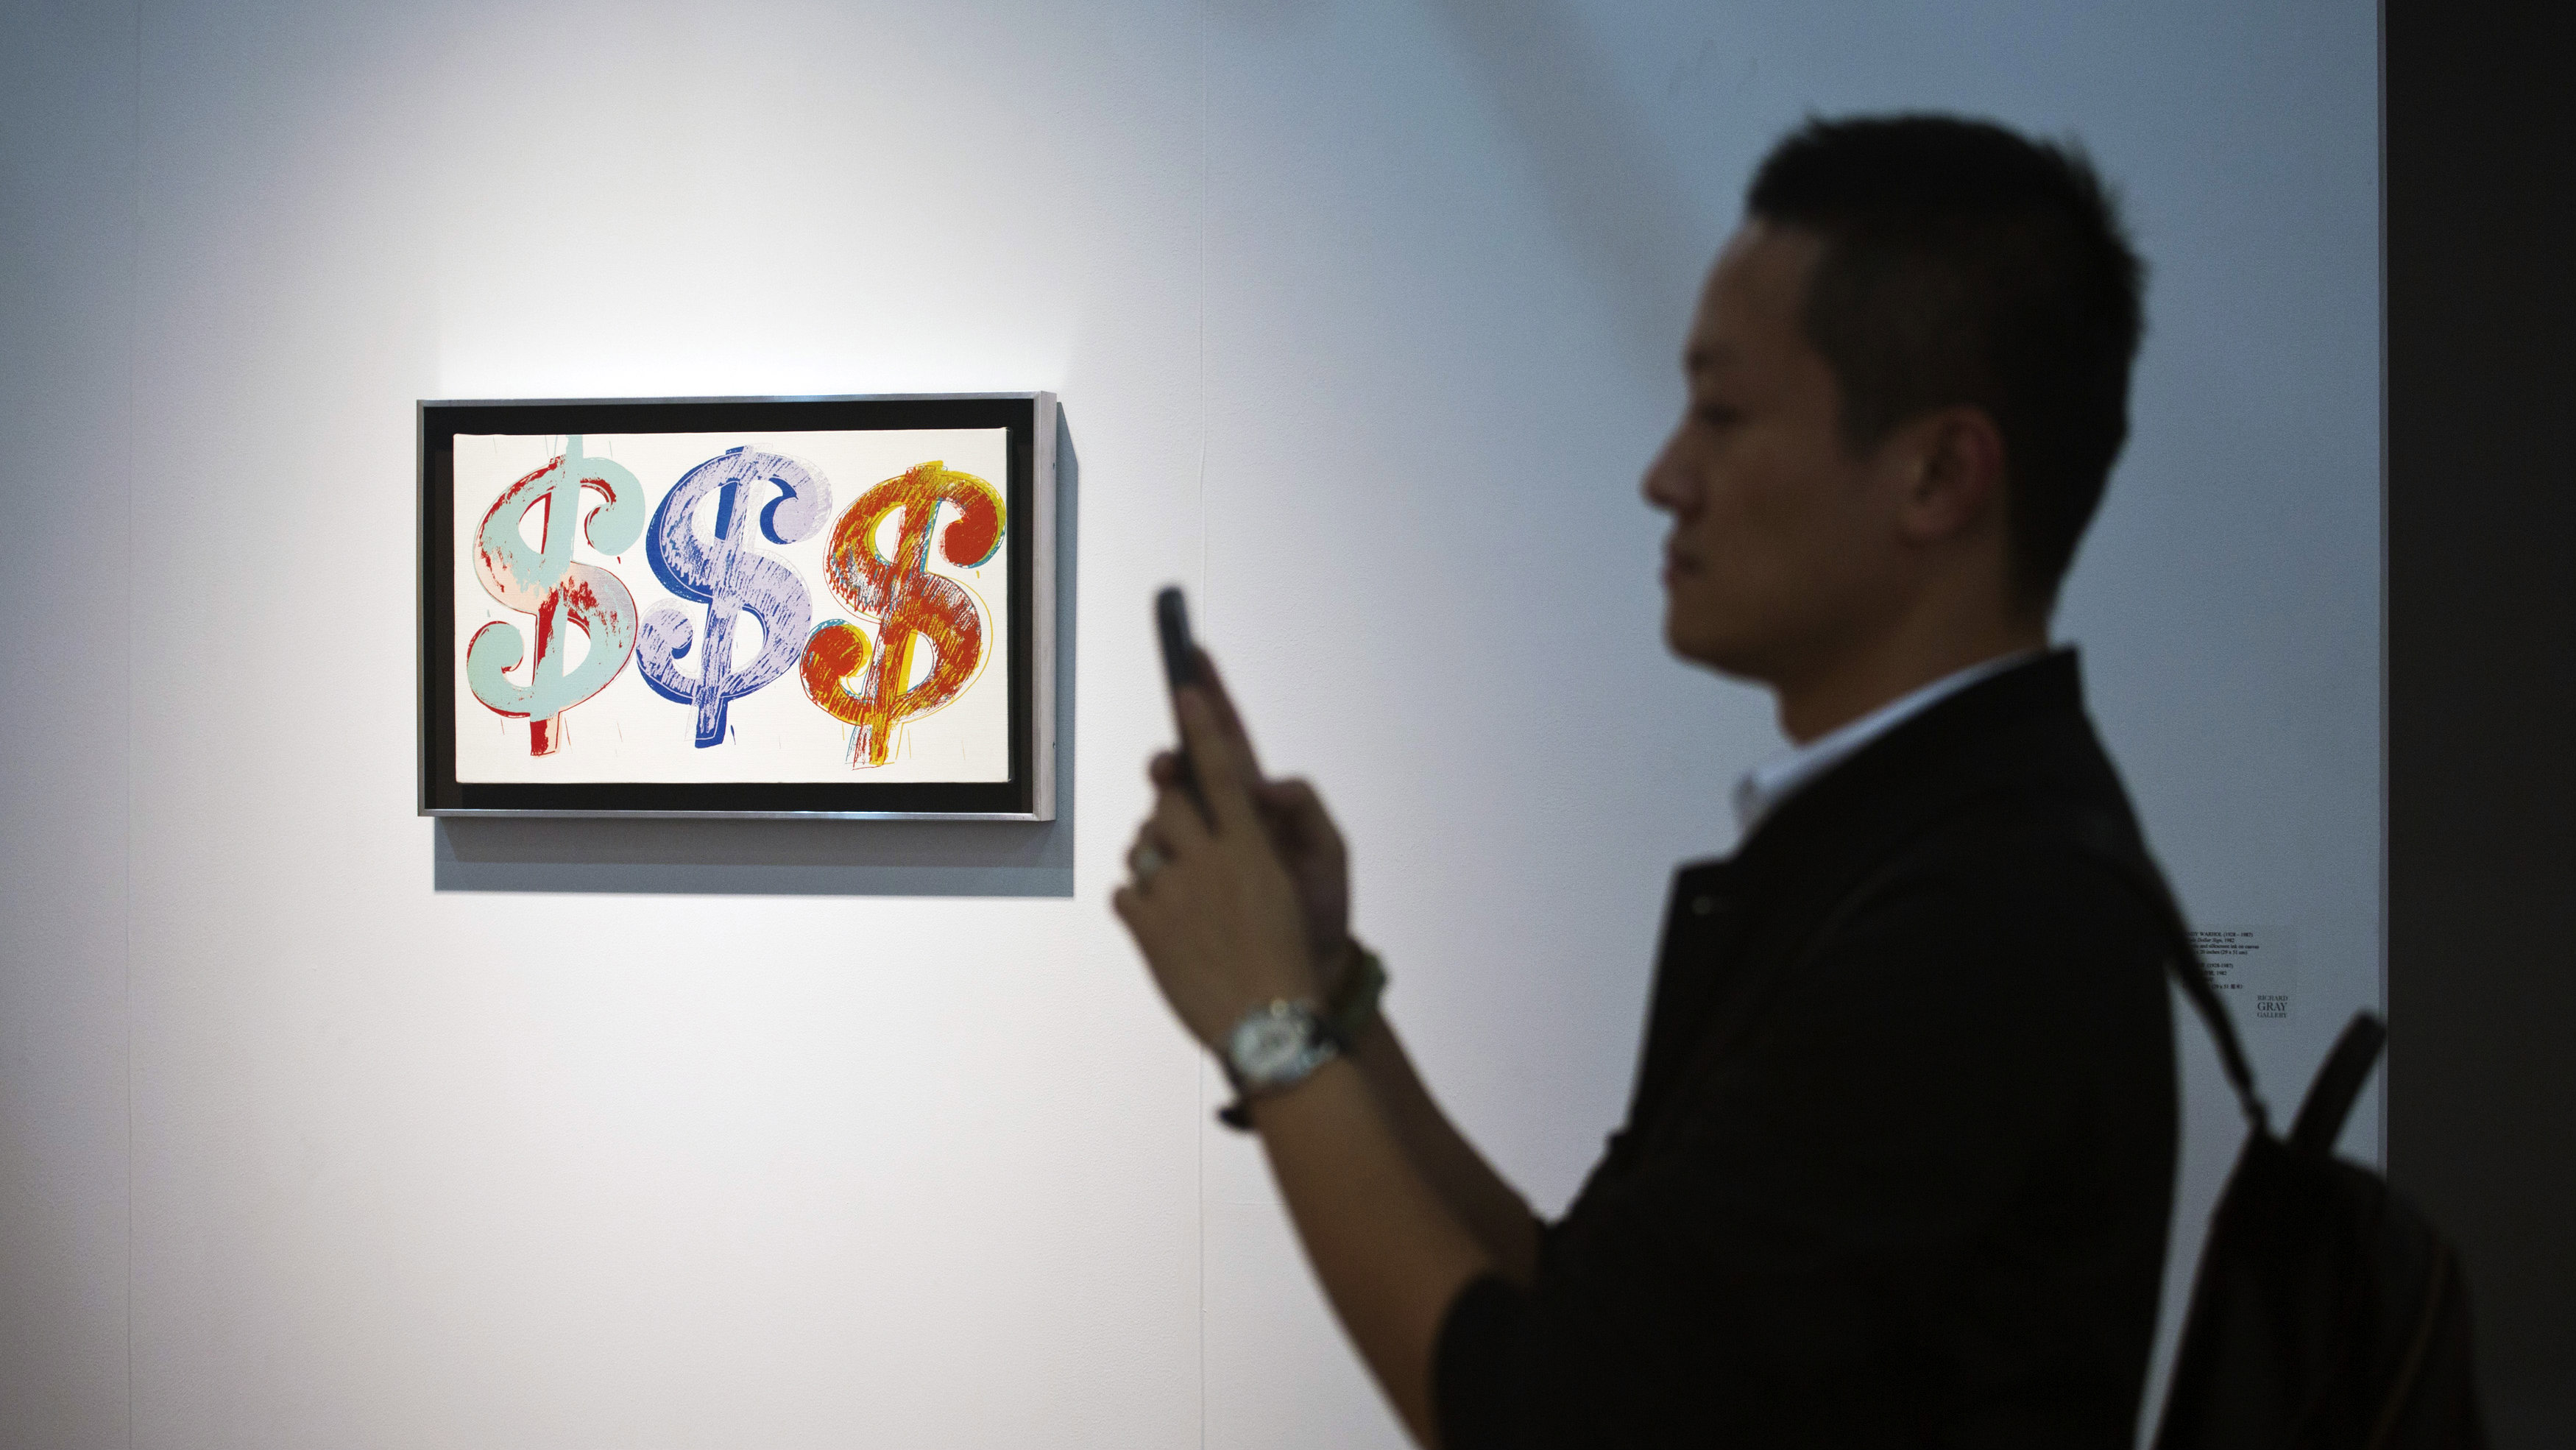 """A man takes pictures with his phone next to an artwork titled """"Triple Dollar Sign"""" by U.S. artist Andy Warhol during a preview of the first Art Basel in Hong Kong May 22, 2013. Founded by gallerists in 1970, the Art Basel is an international art show which has been held annually in Basel and Miami Beach. Its debut in Hong Kong features modern and contemporary artworks by more than 2,000 artists from Asia and around the world, and runs from May 23 to 26, according to the event's news release."""